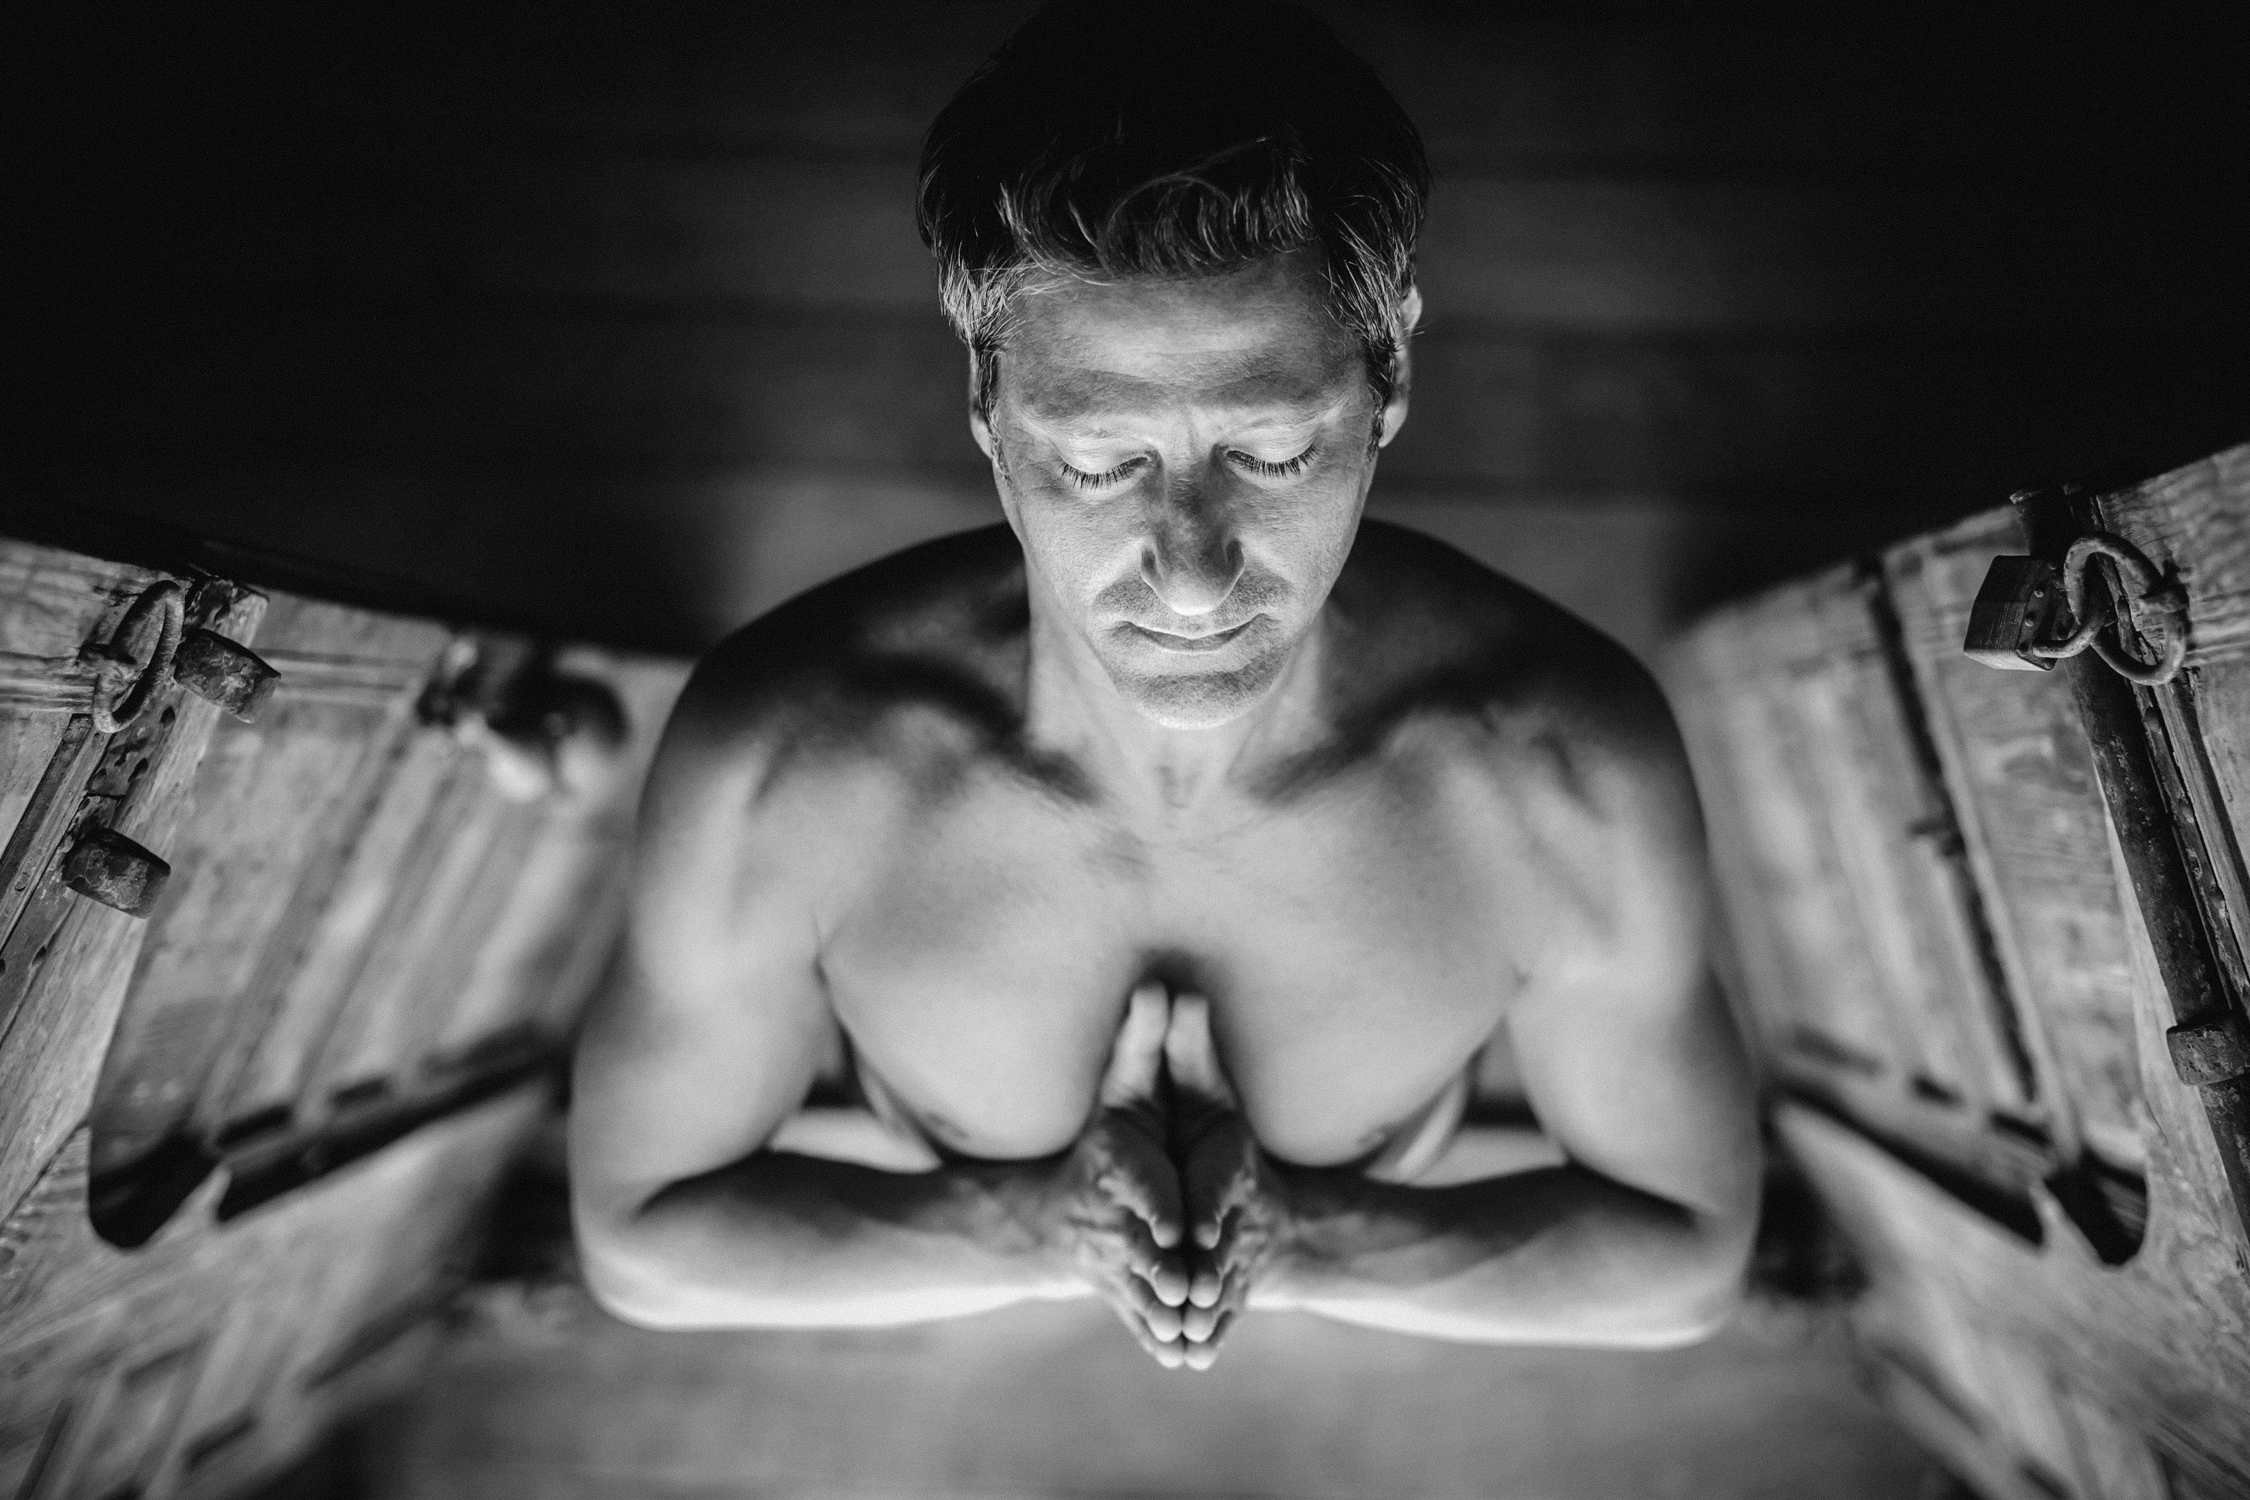 tony_g_yoga_11_retouch_bw_high_rez.jpg